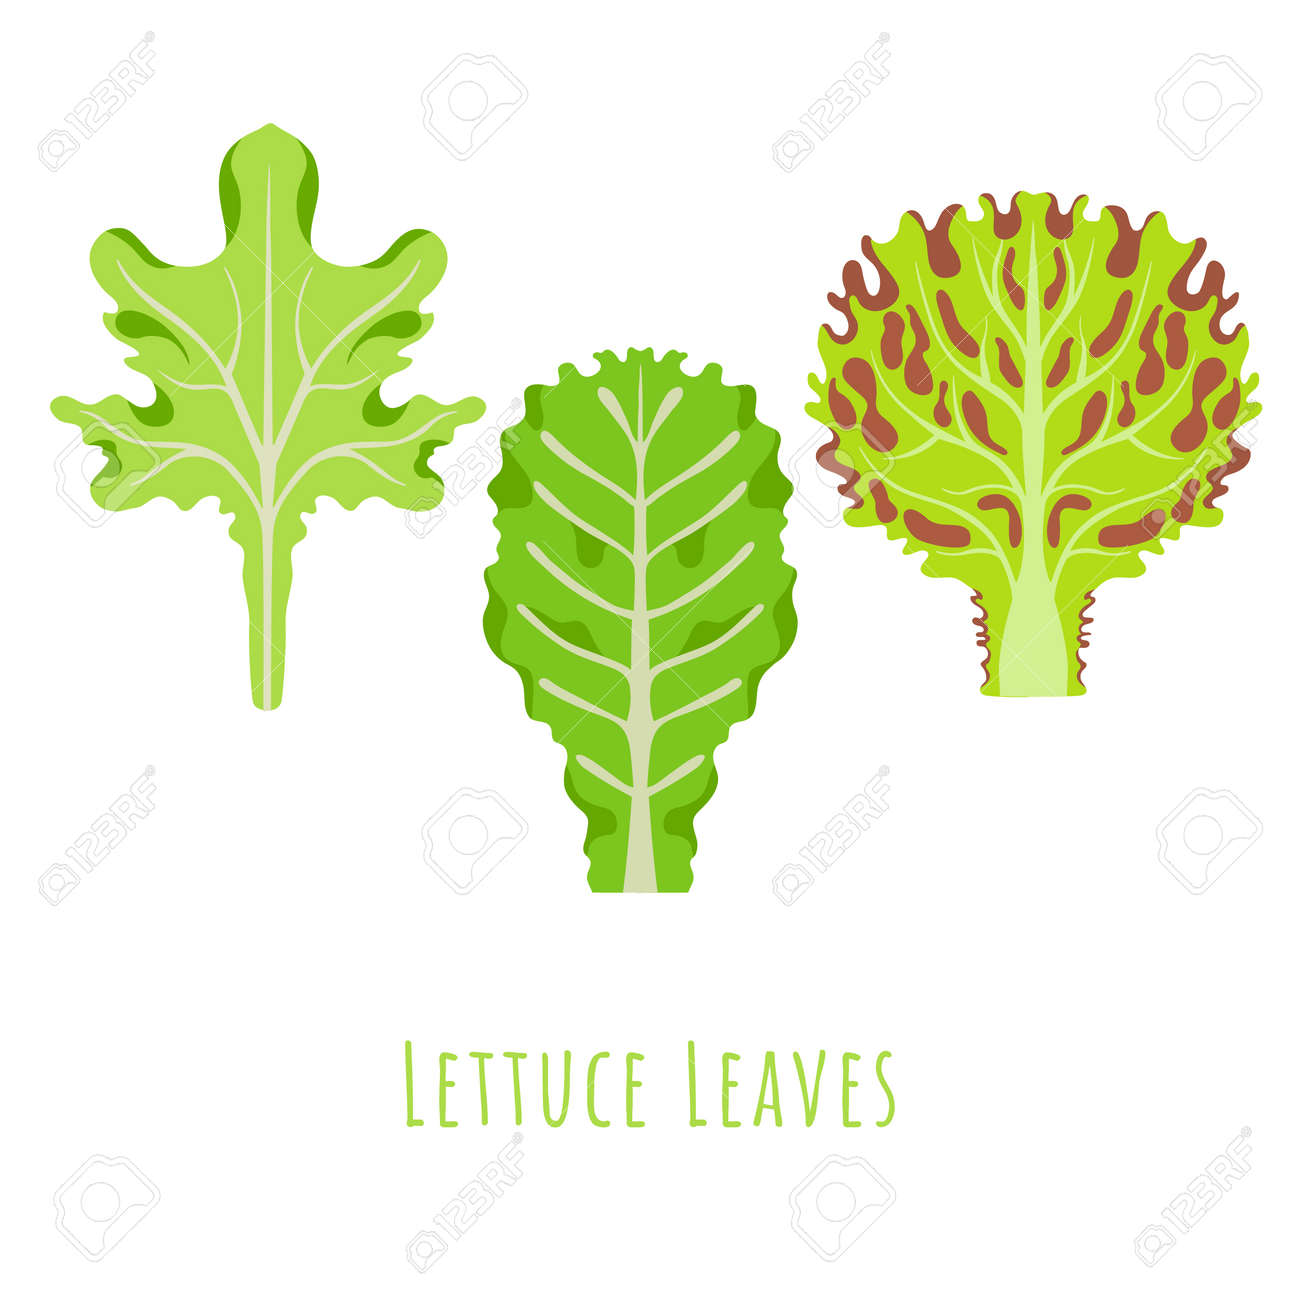 Three isolated different leaves of the Lettuce made in flat style. No outlined Symmetrical Leaves shapes filled with color only. Colorful vector illustration for product design, web and print usage. - 167305665